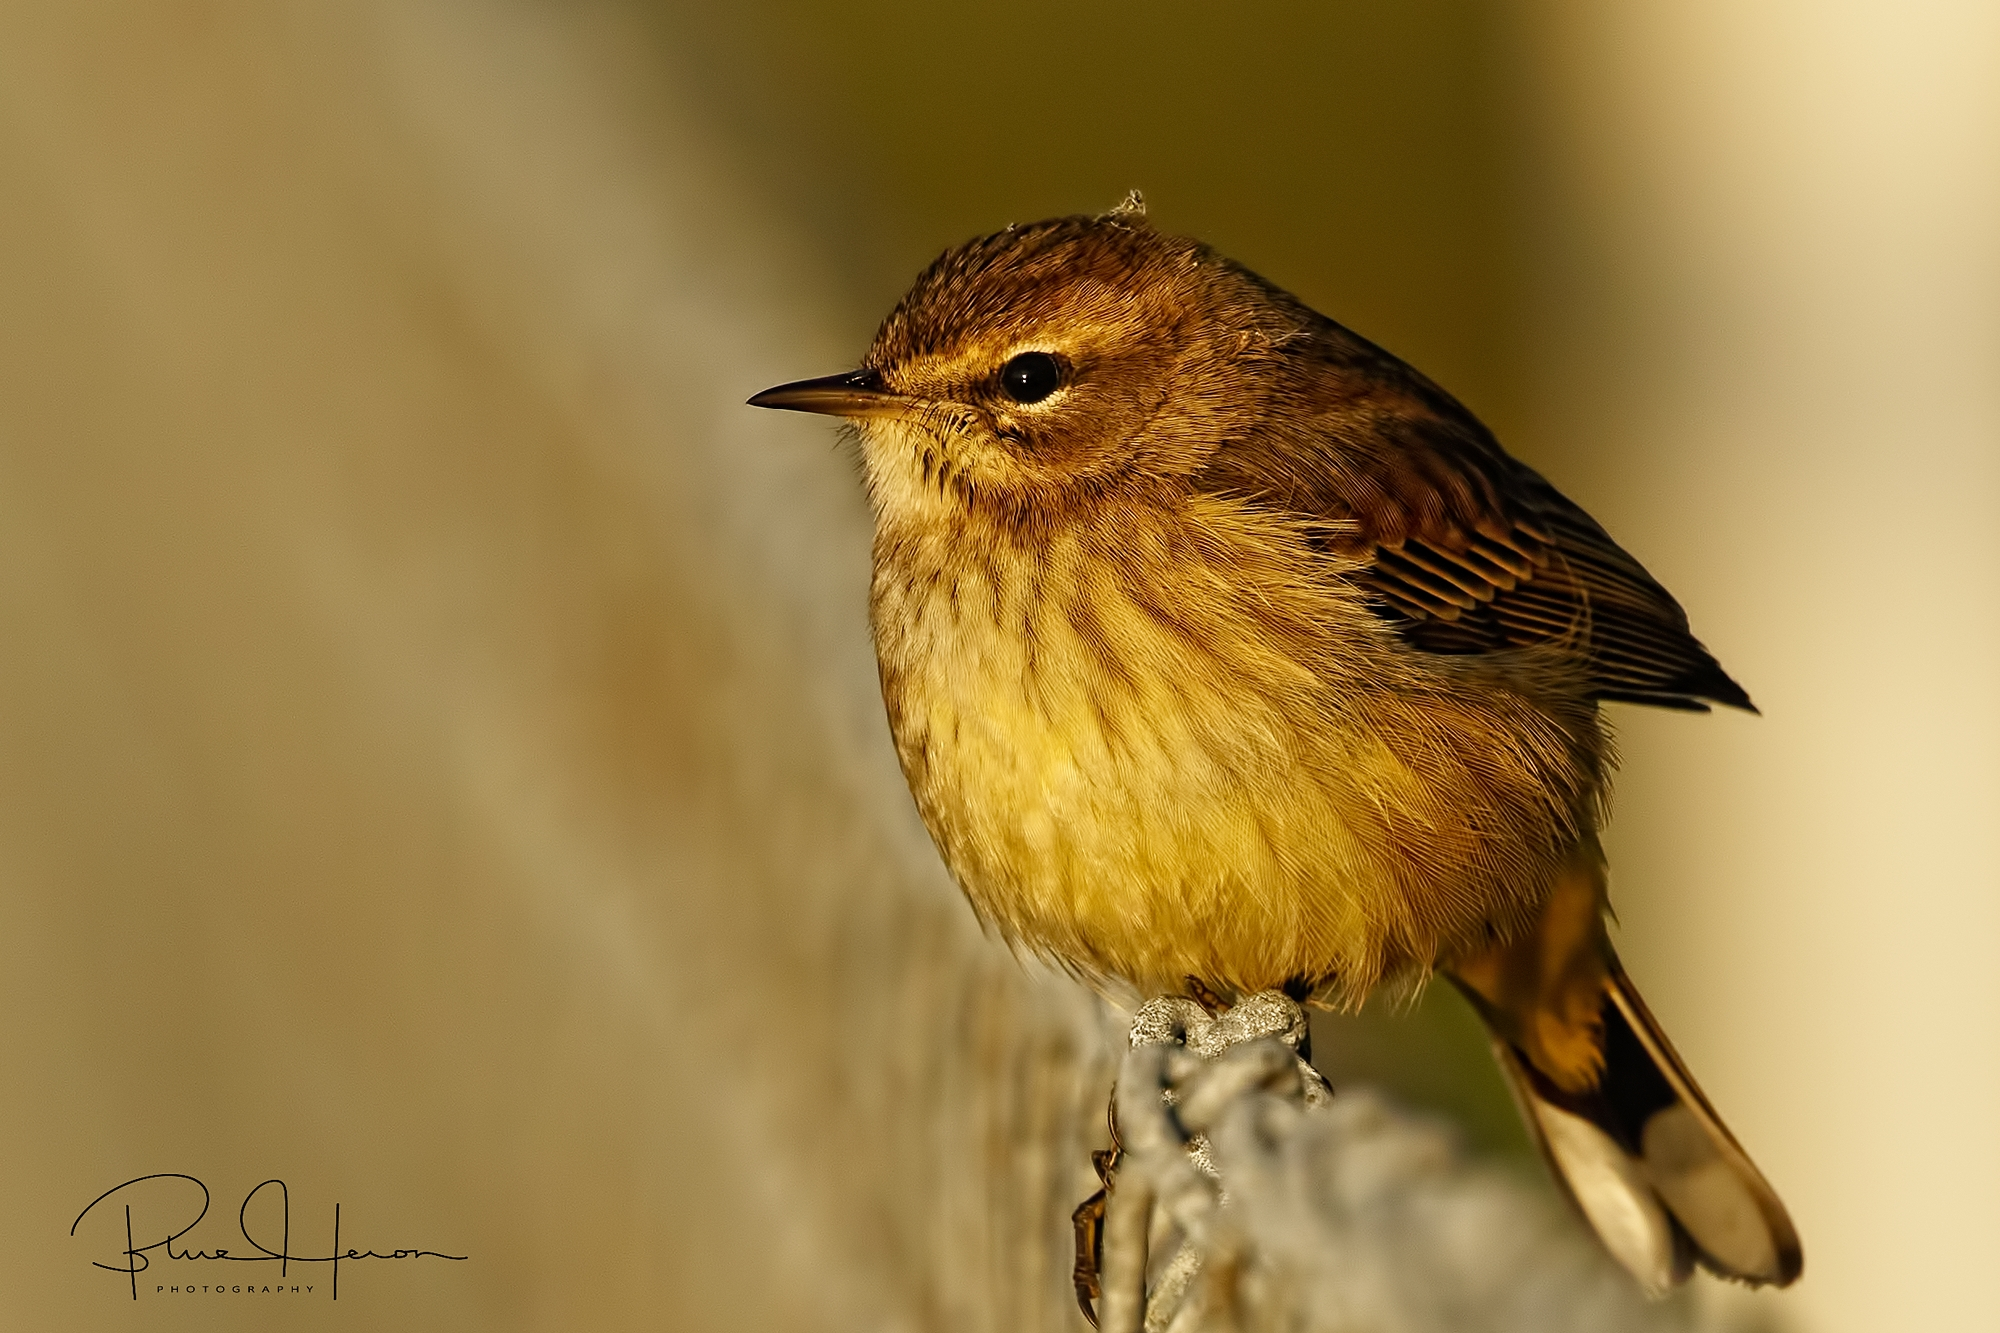 Got this cute little Palm Warbler on the fence,,,it isn't blue or white though..